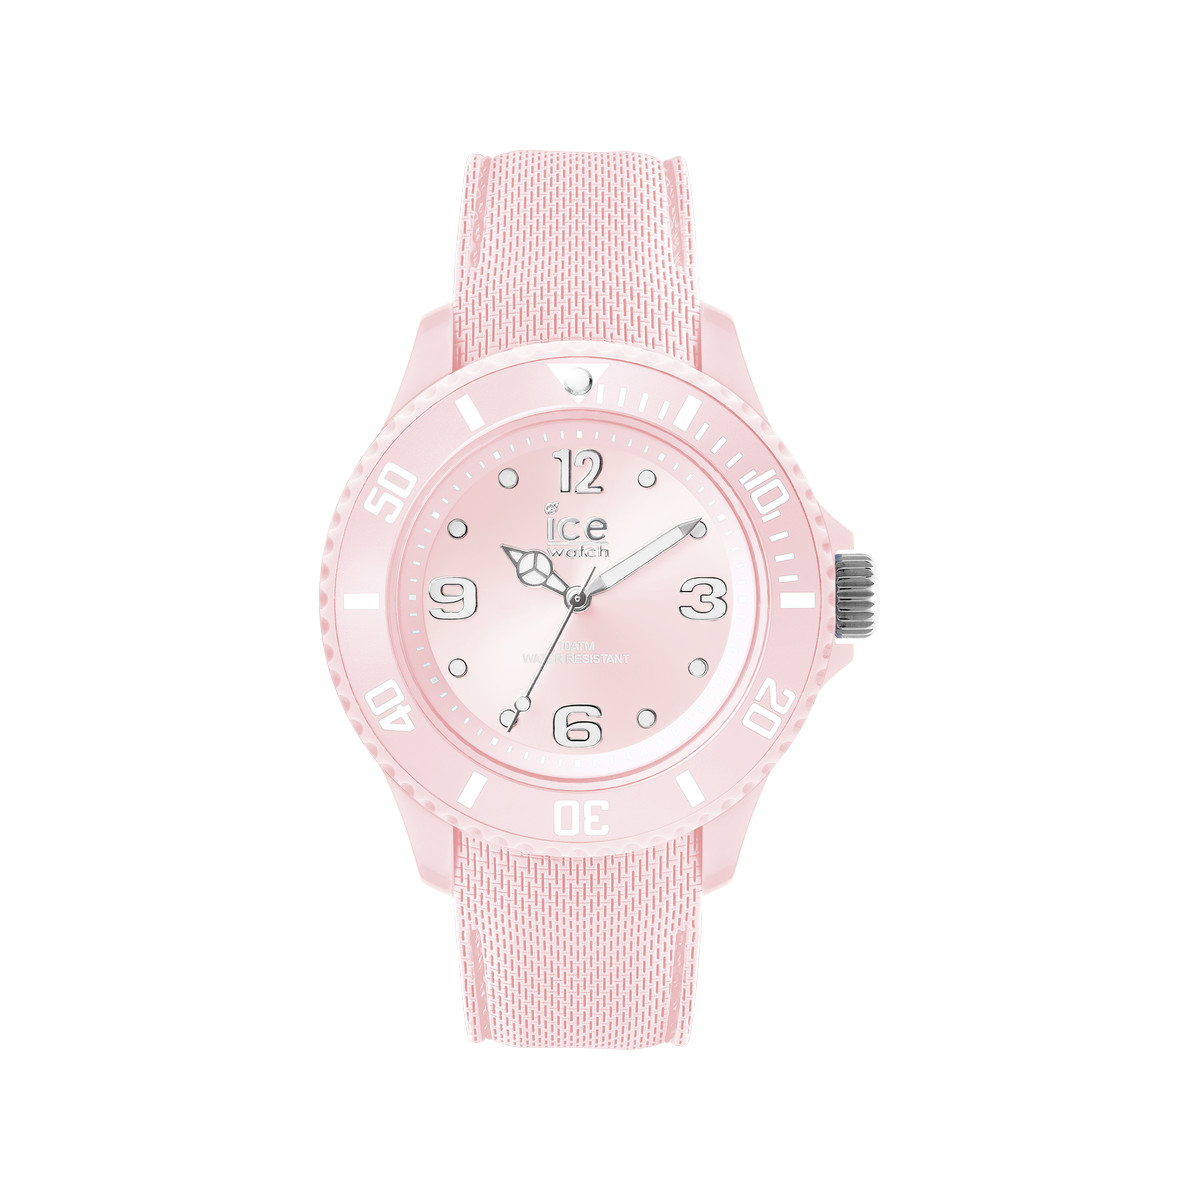 Montre Ice Watch femme silicone rose pastel